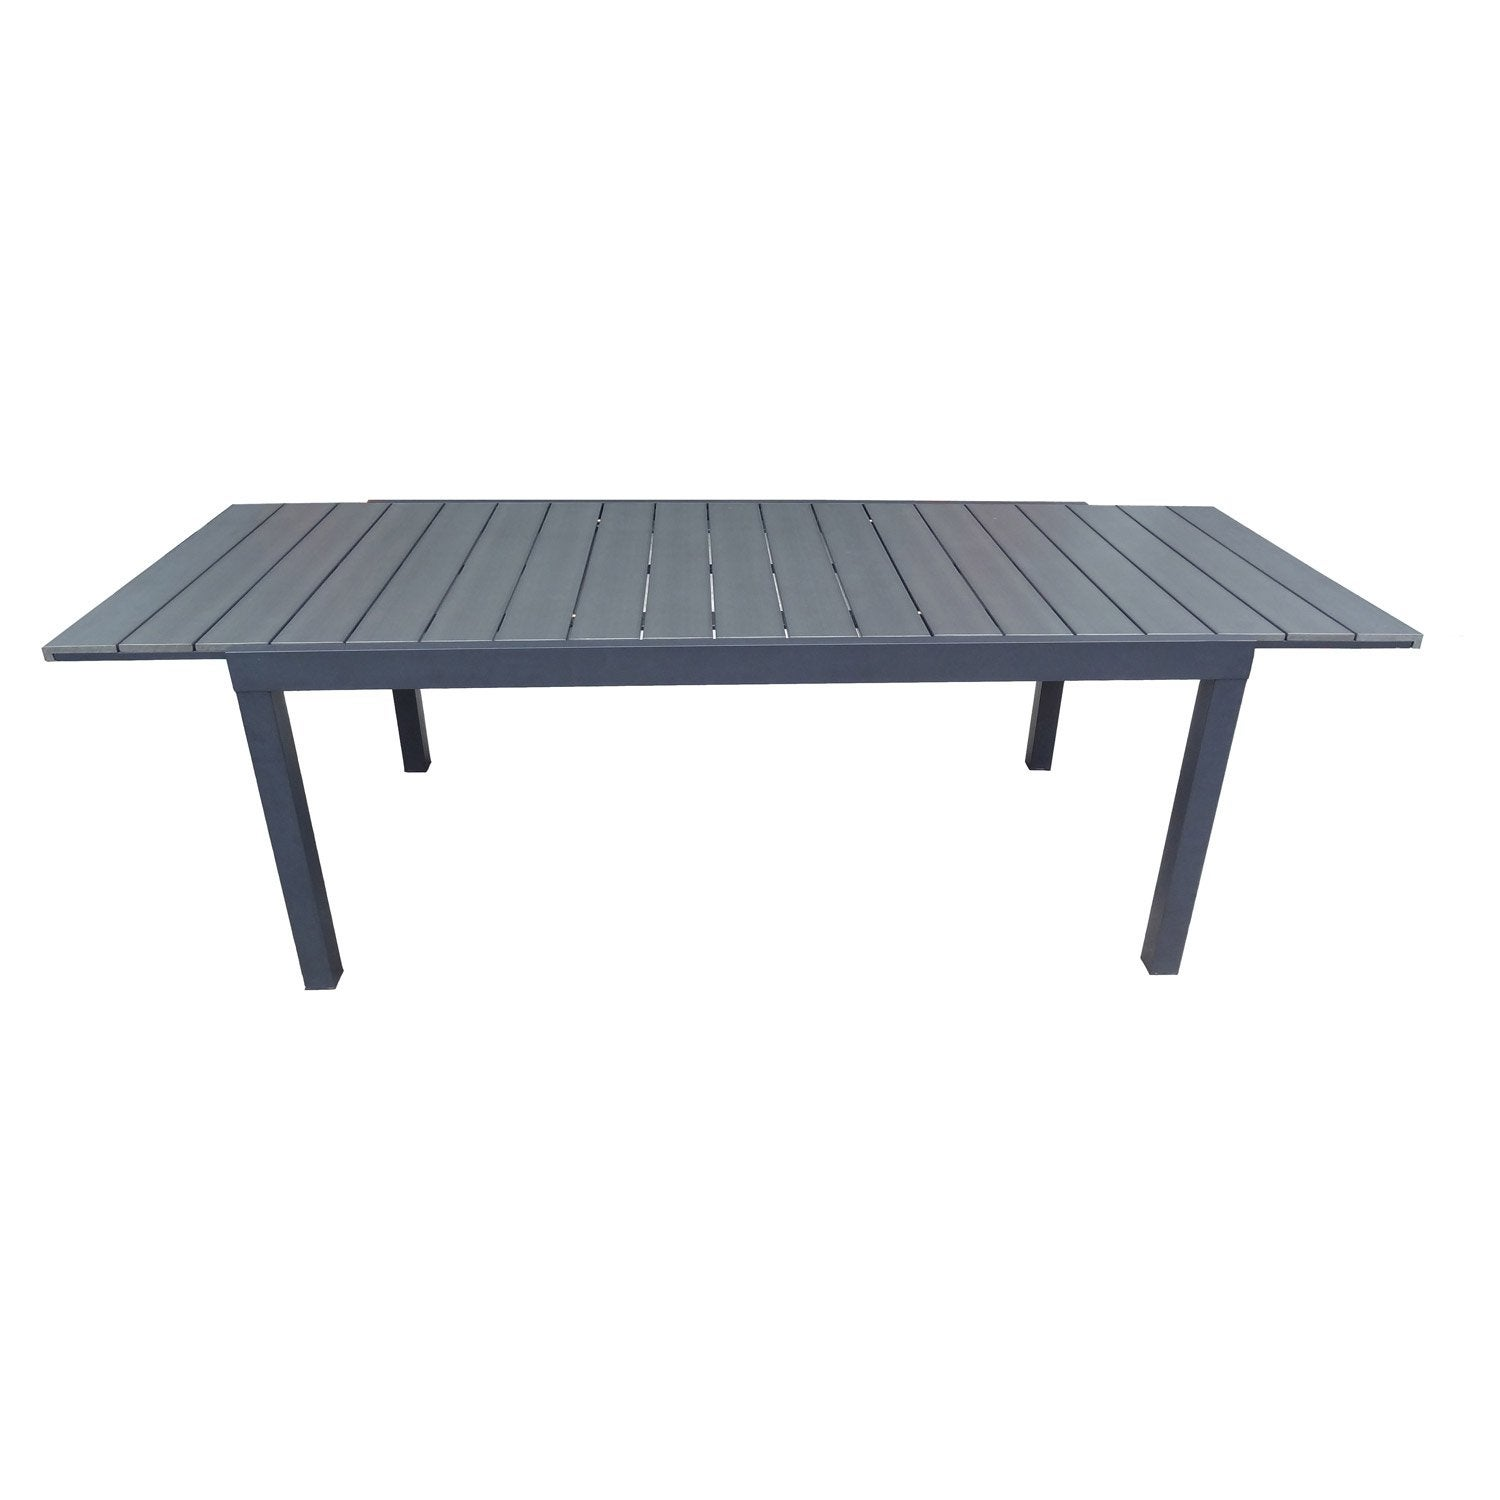 Table de jardin naterial pratt rectangulaire gris leroy merlin Table de jardin aluminium en solde